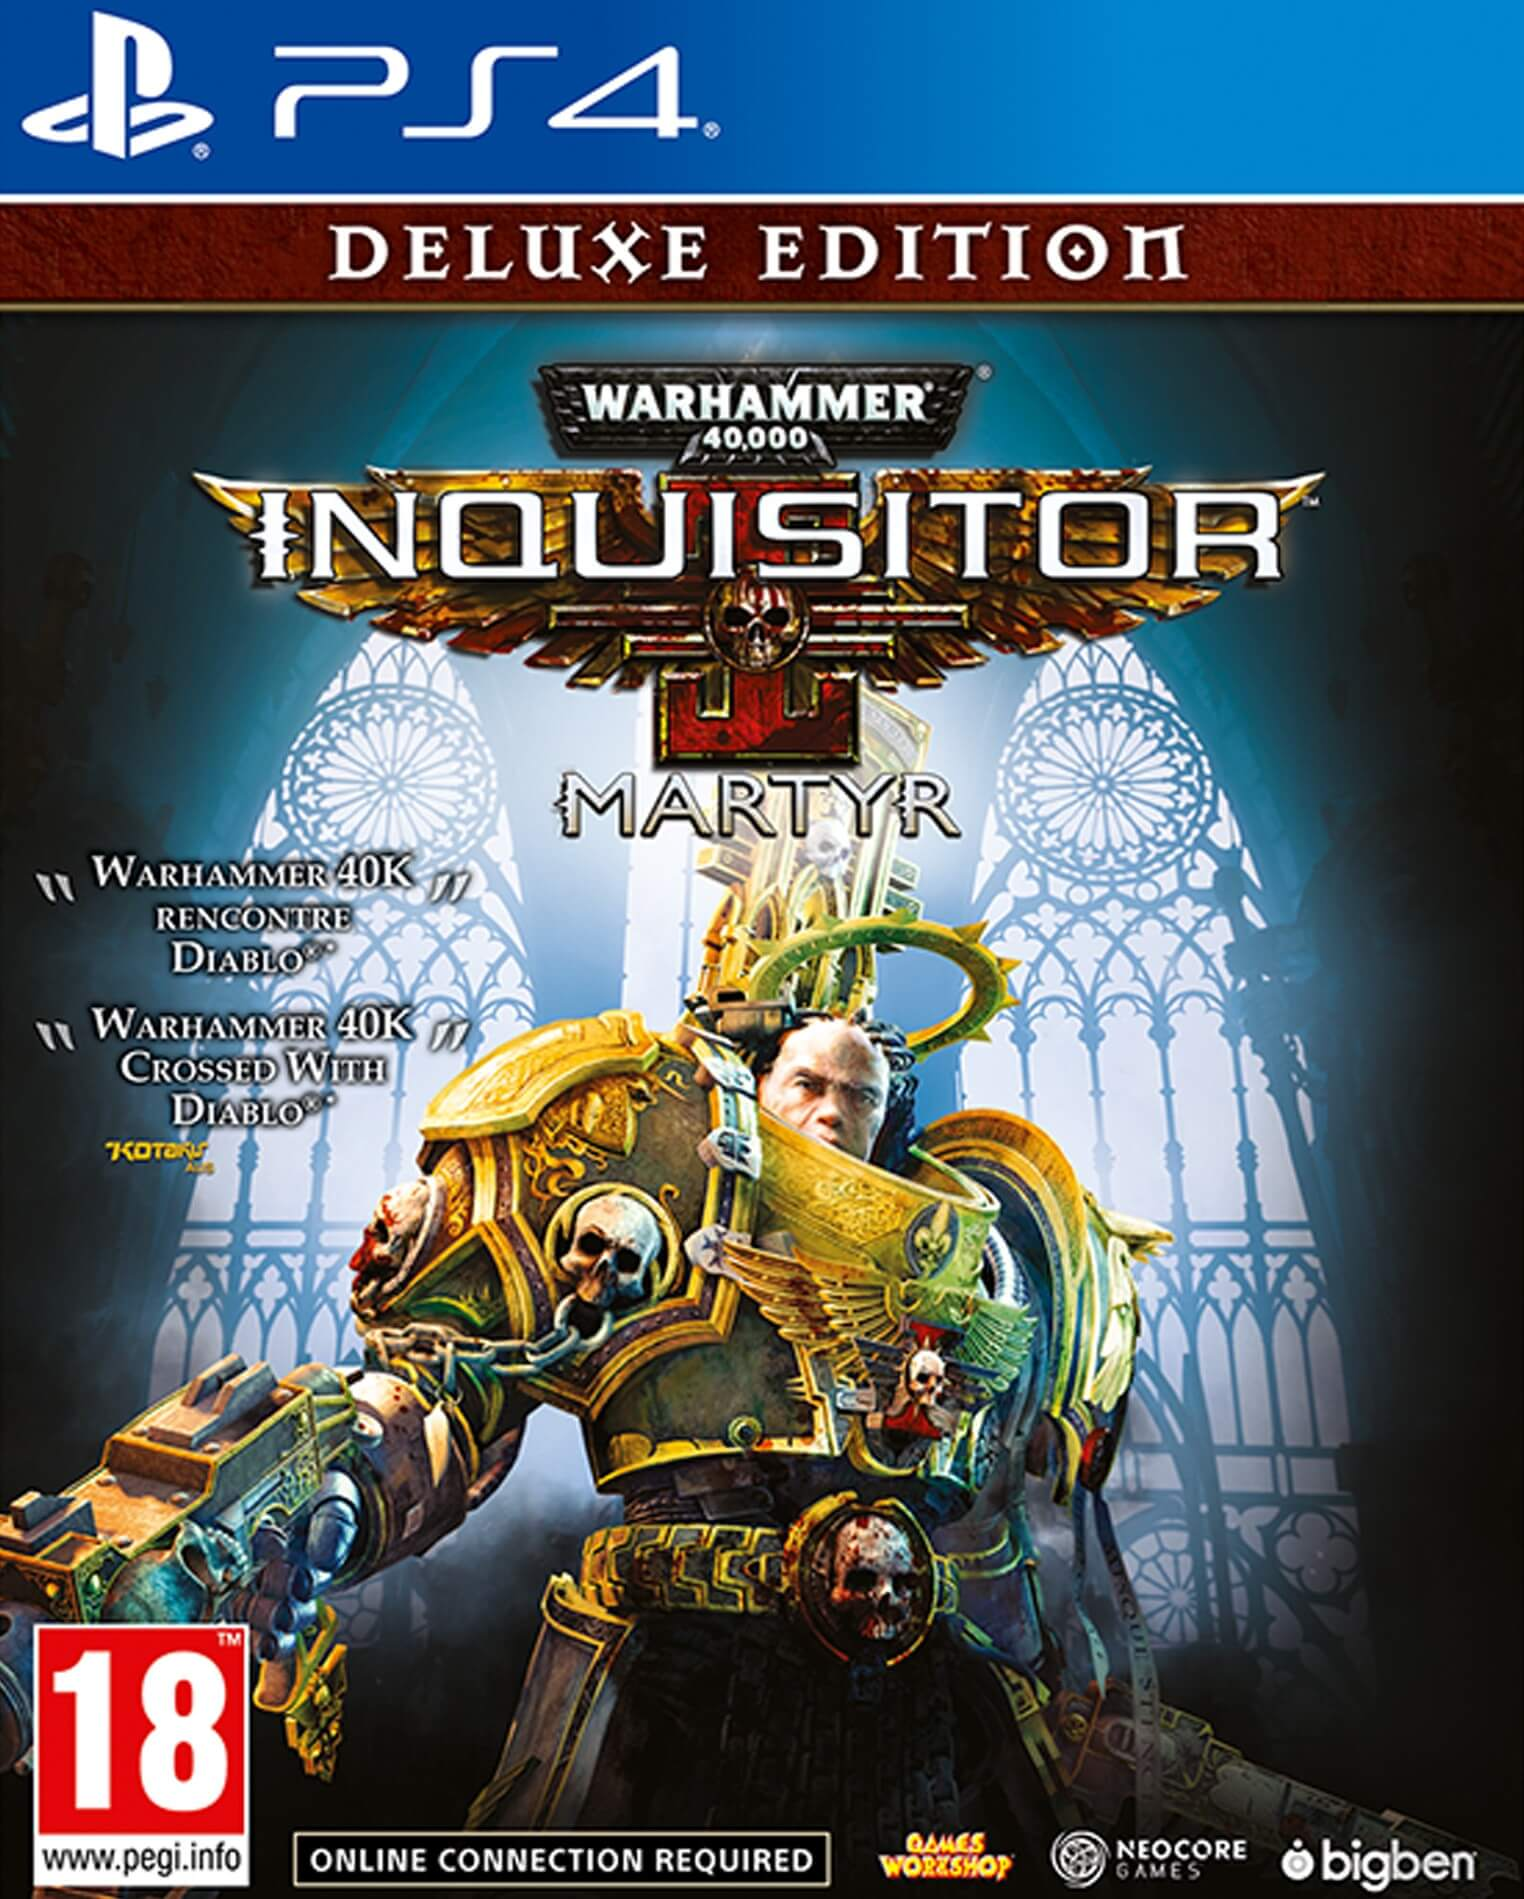 Warhammer 40K Inquisitor Martyr Deluxe Edition